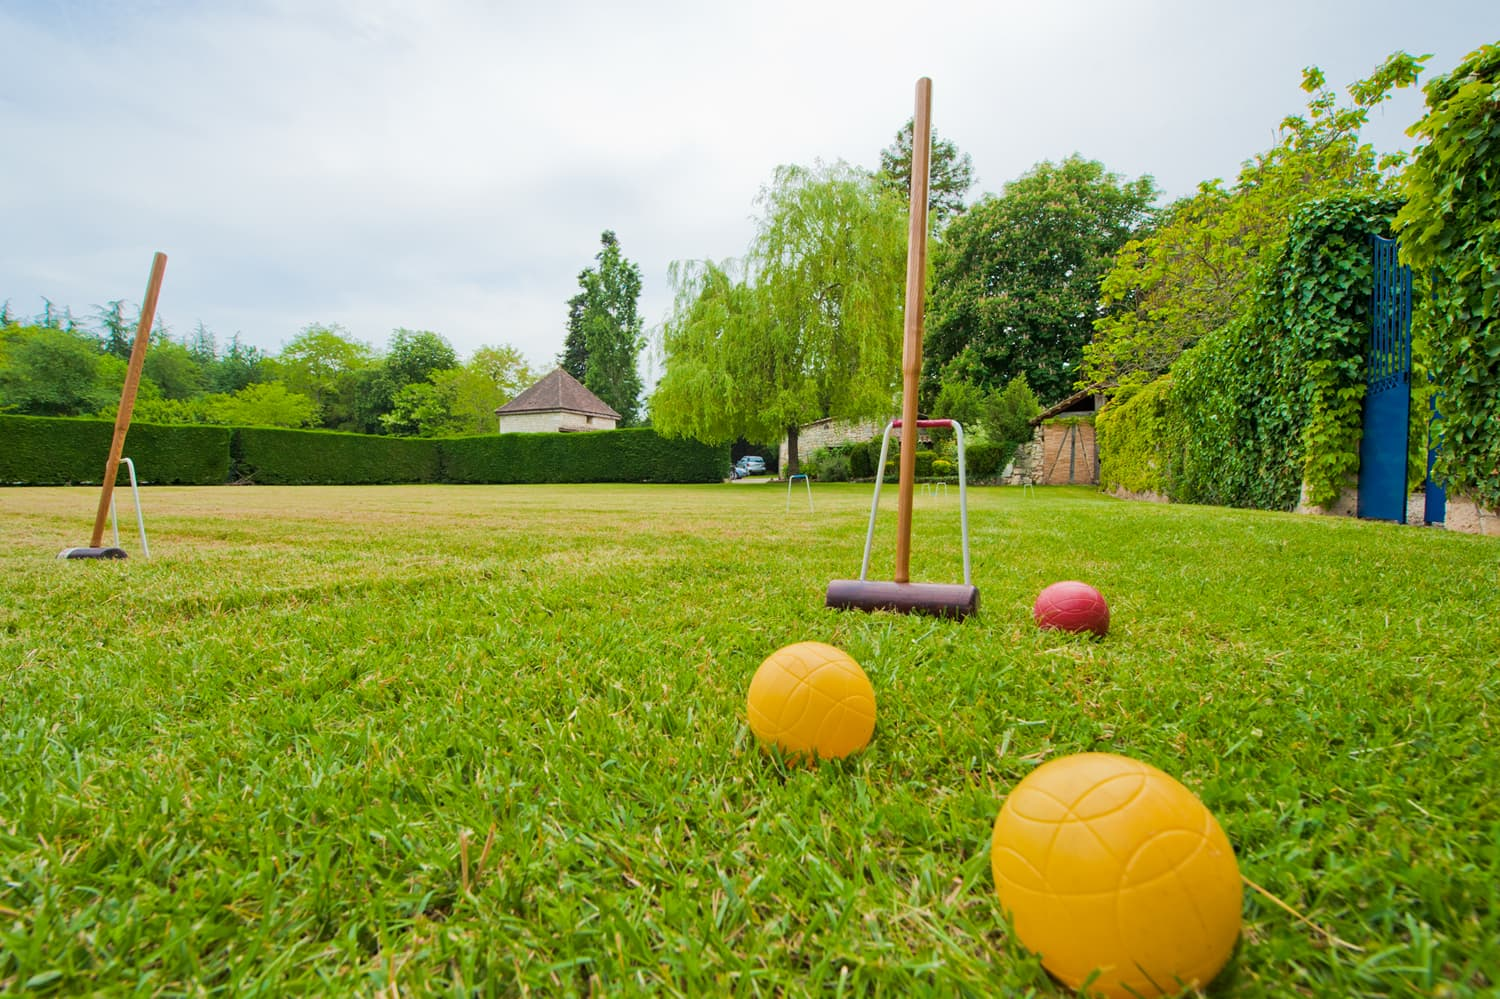 Lawned garden with croquet